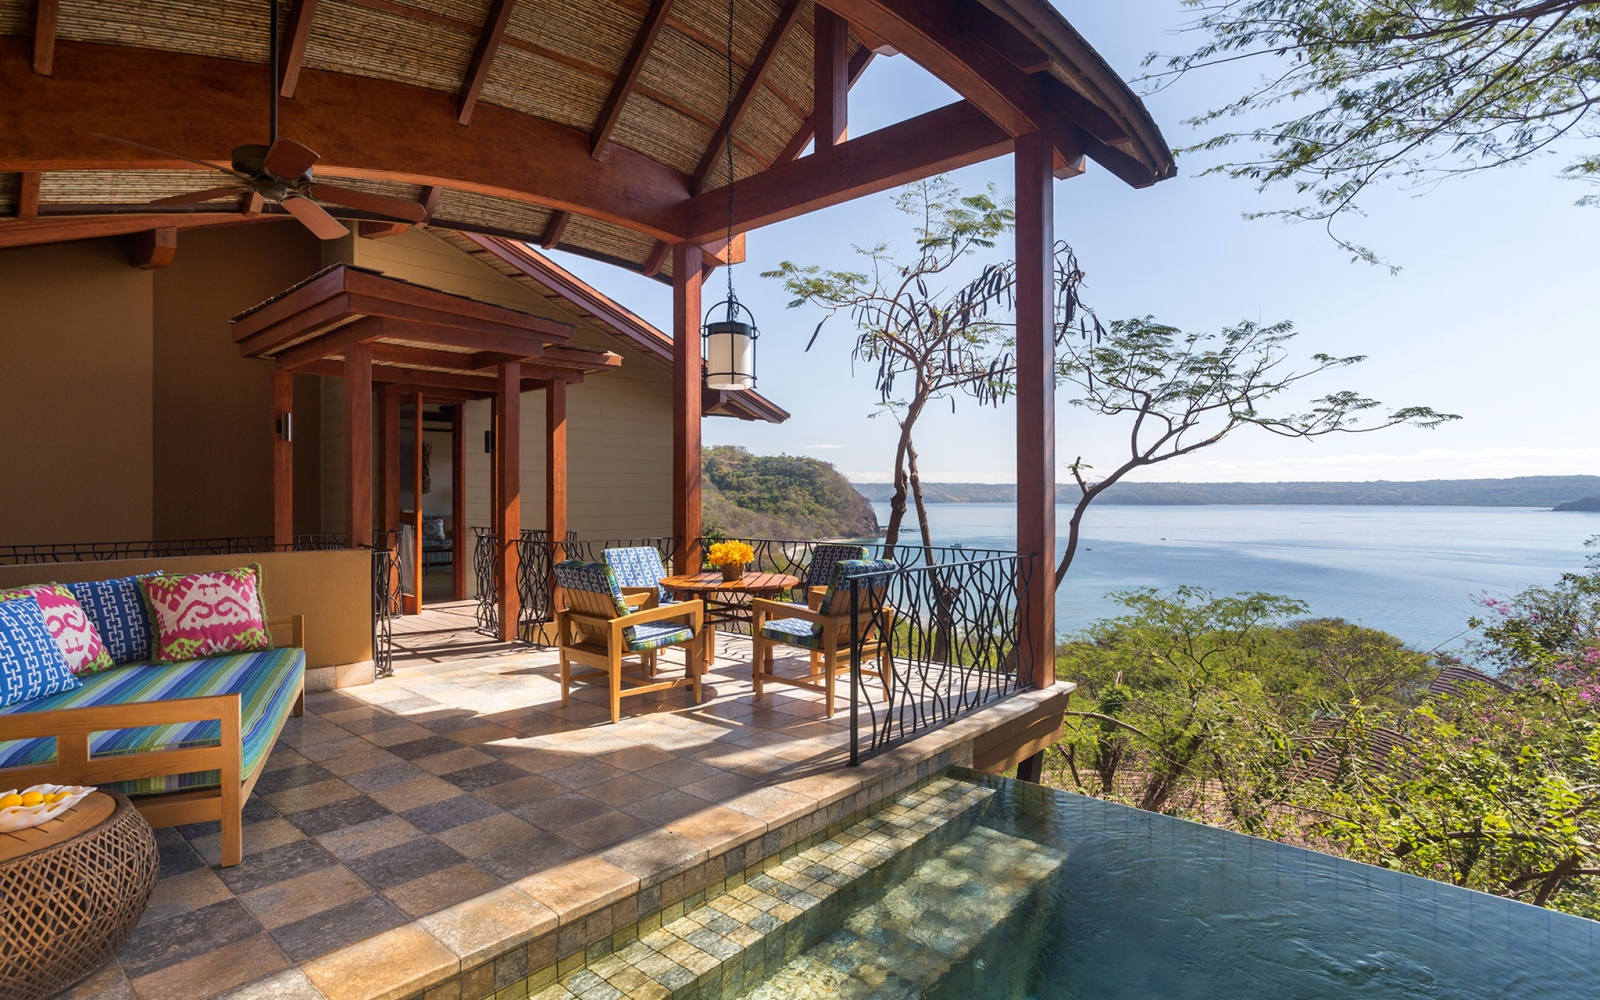 Four Seasons Resort Costa Rica at Peninsula